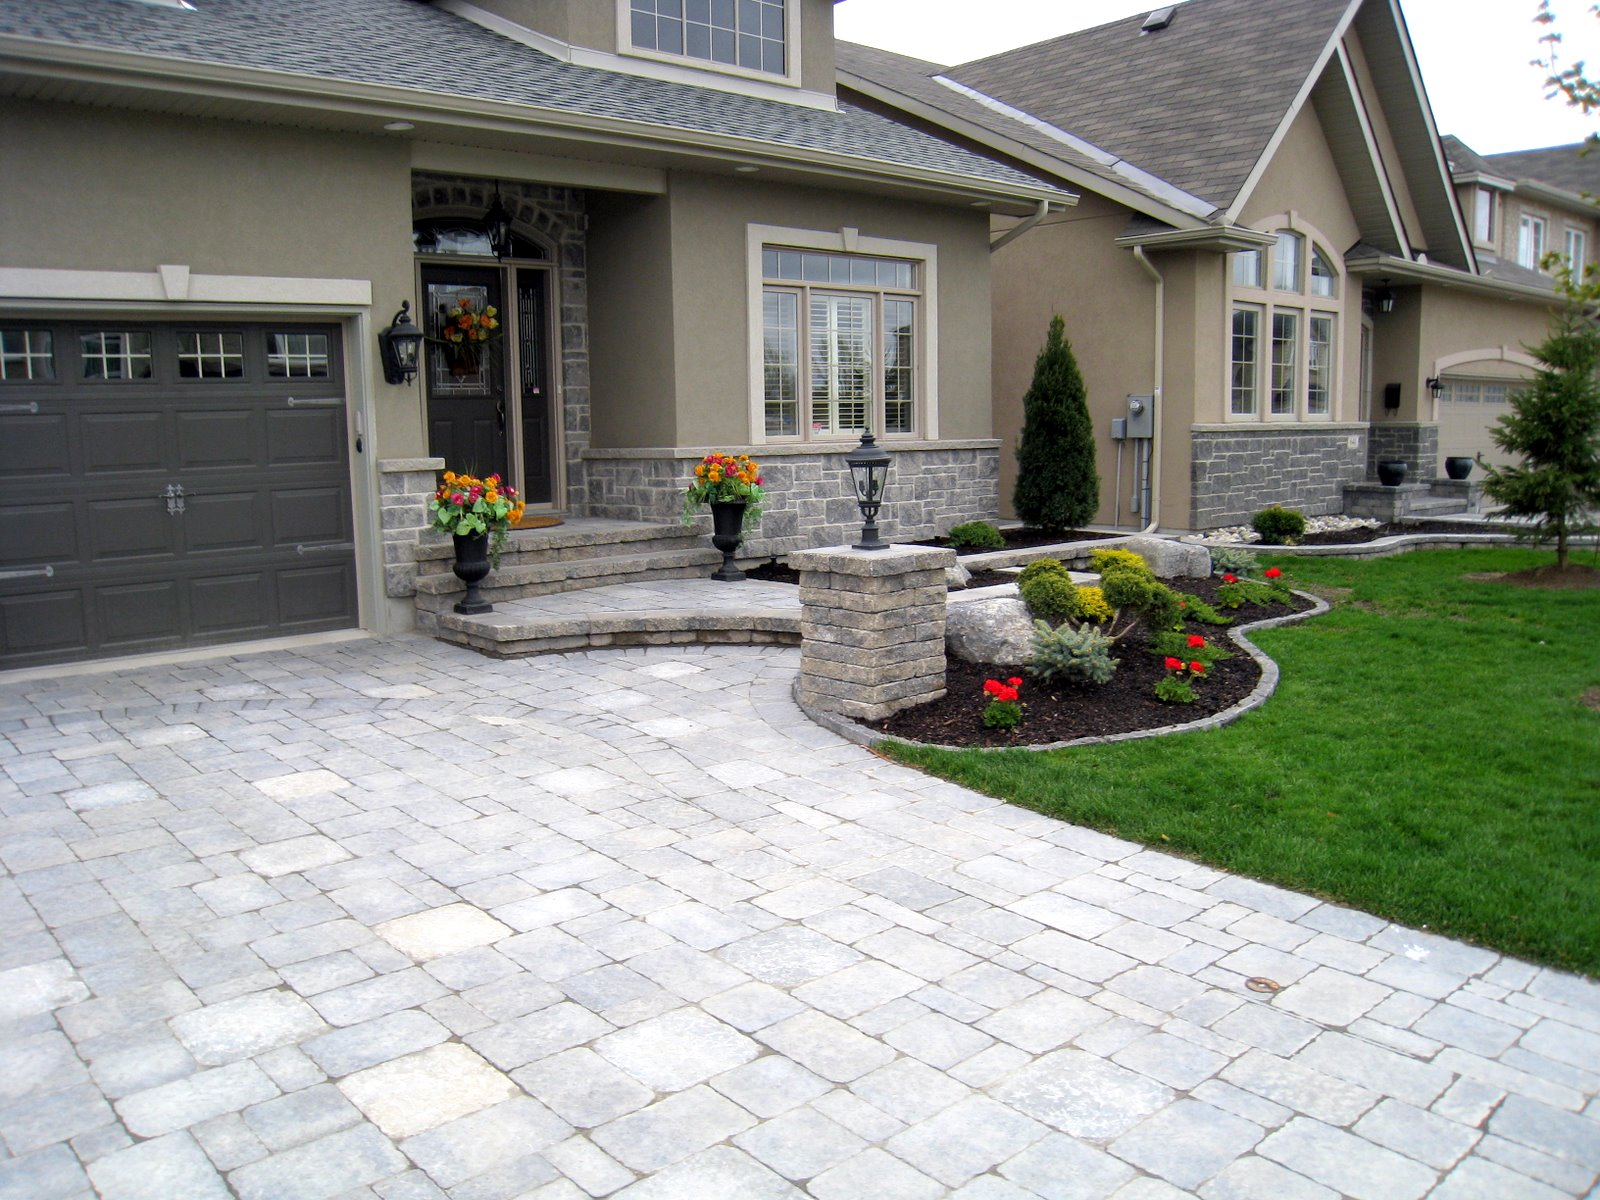 Best Driveway Surfaces for Canada on Backyard Decor Canada id=62072